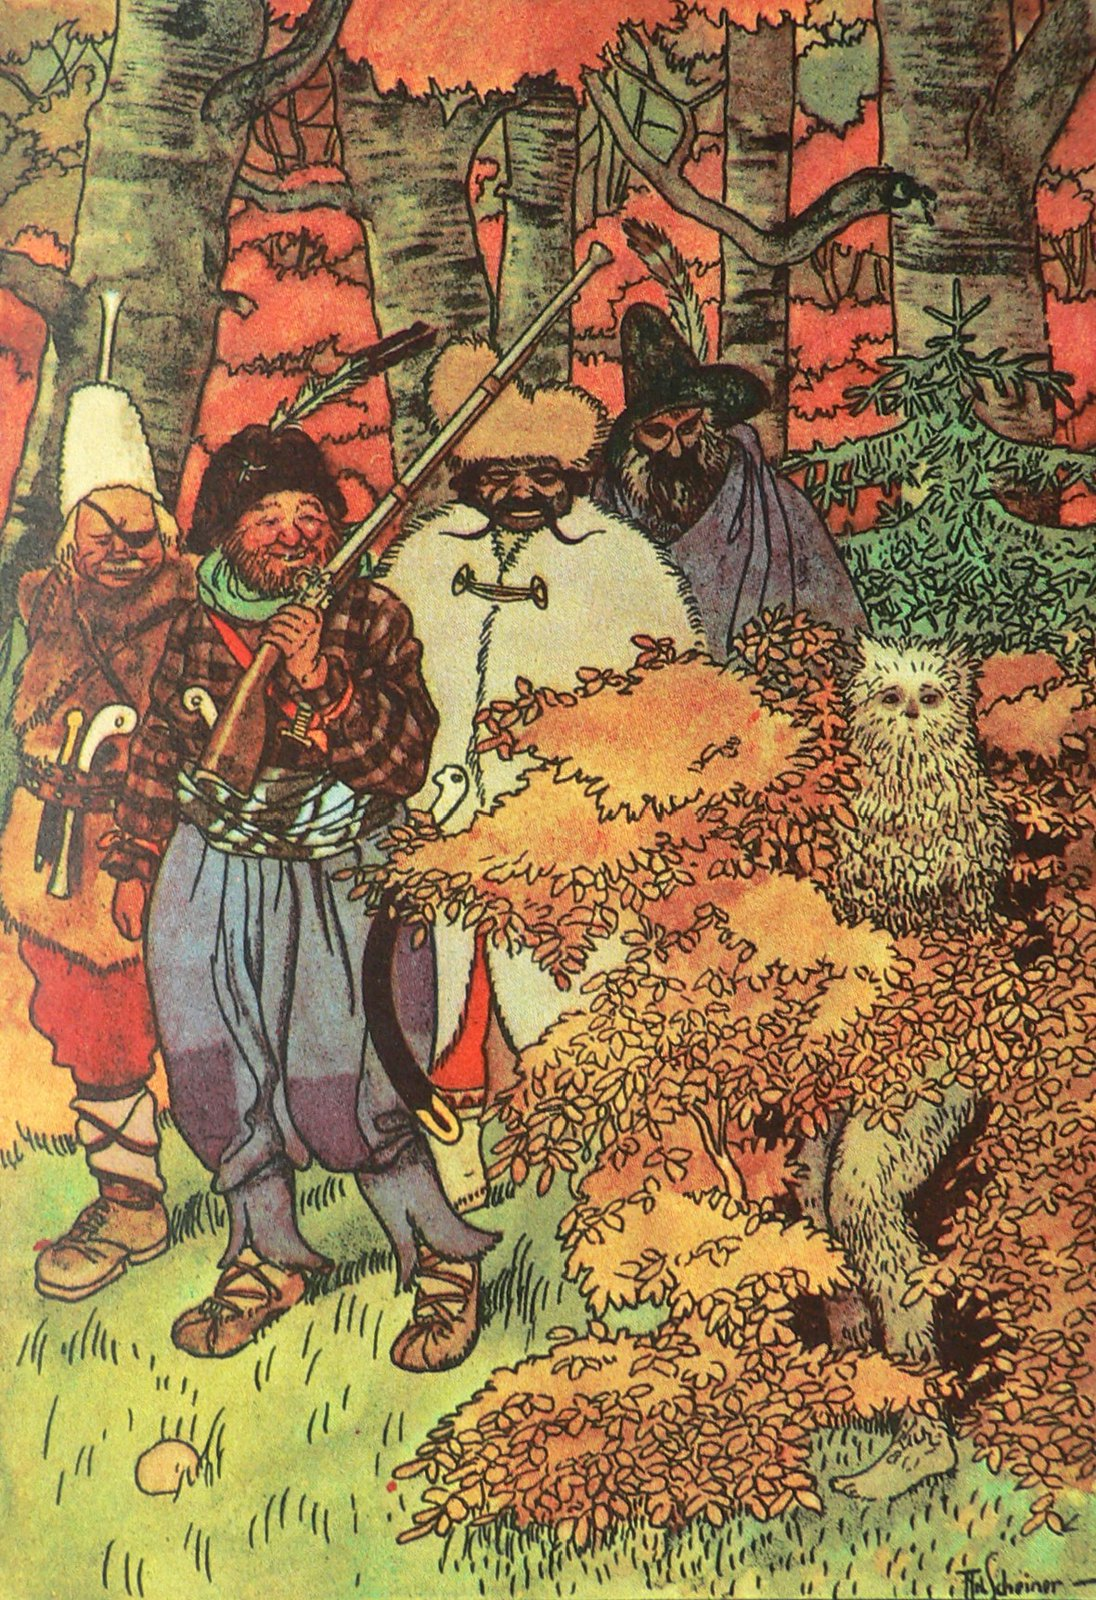 Artus Scheiner - Robbers of the Enchanted Forest